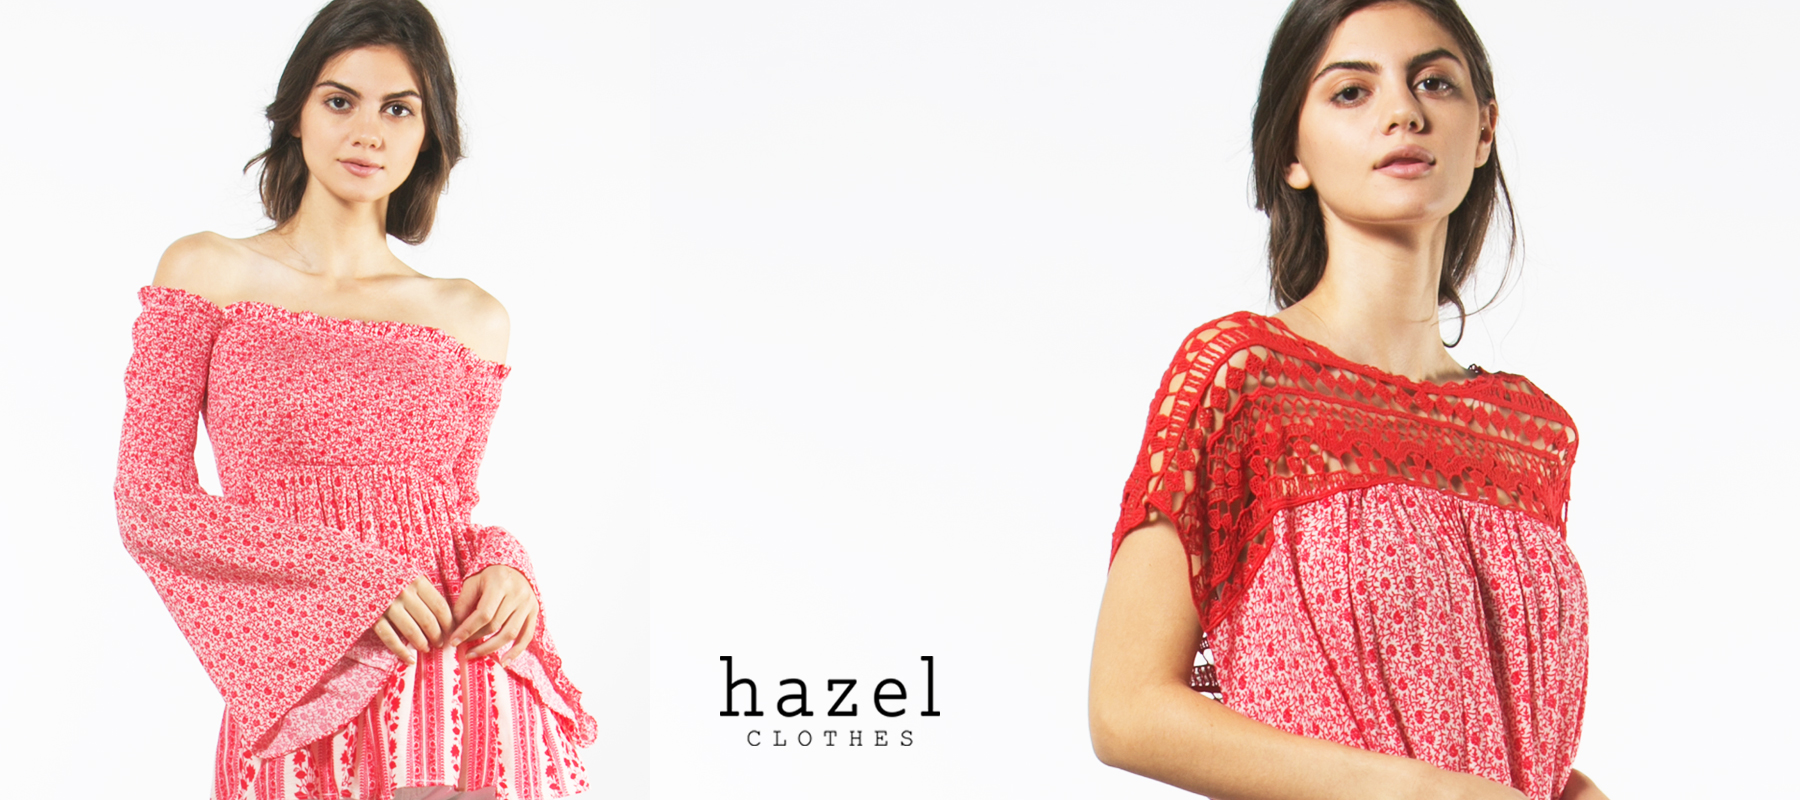 hazel clothes slide5